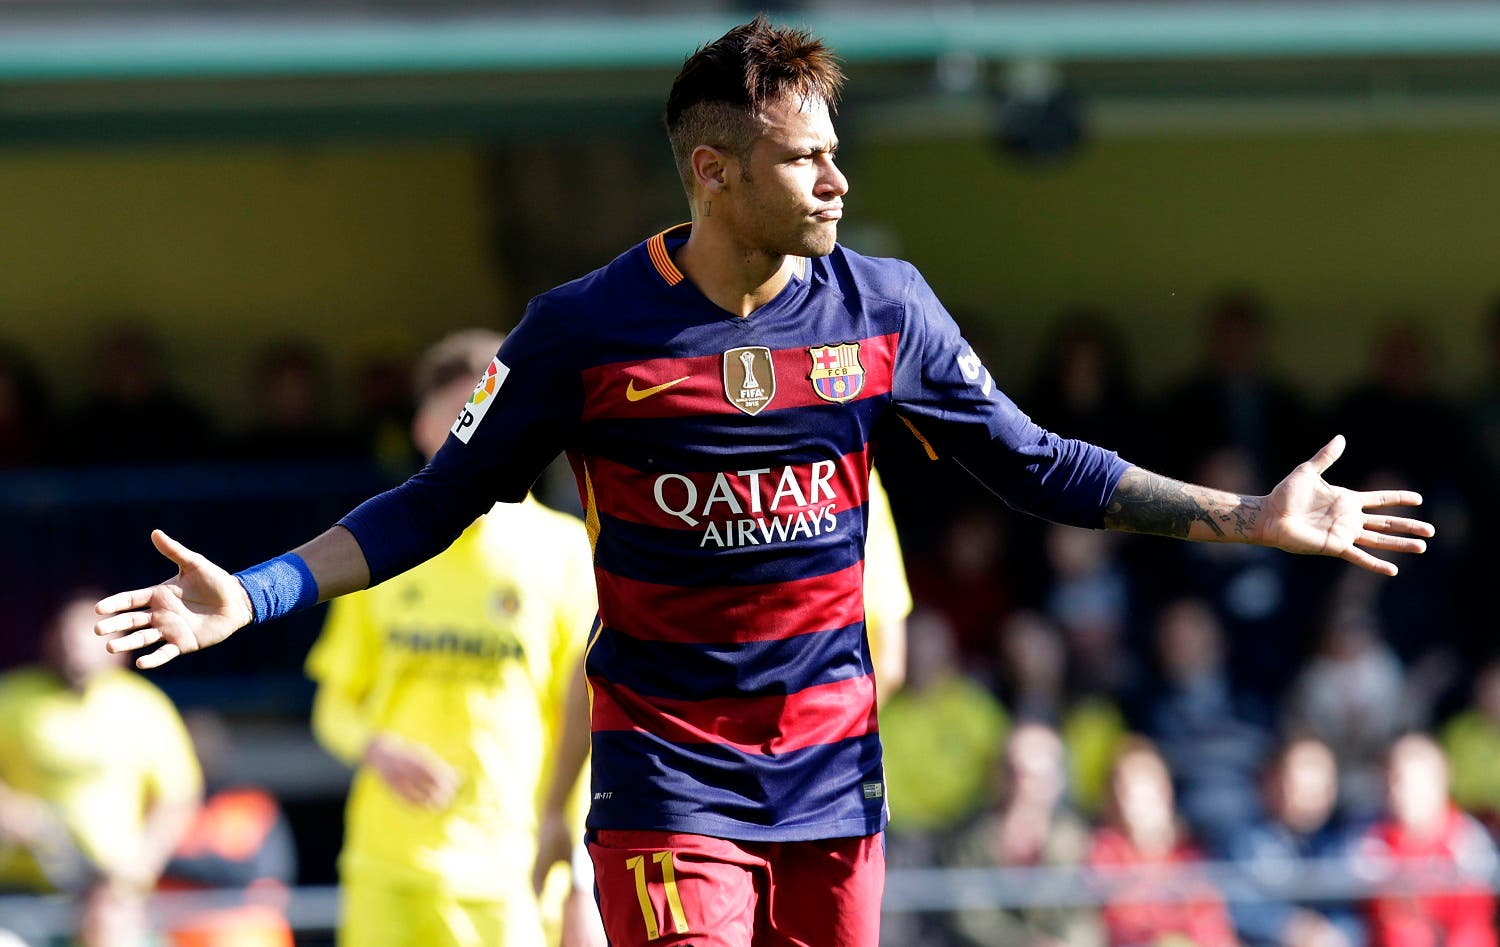 Barcelona's Neymar celebrates after scoring during the Spanish La Liga soccer match between Villarreal and Barcelona at the Madrigal stadium in Villarreal, Spain, Sunday, March 20, 2016. (AP)